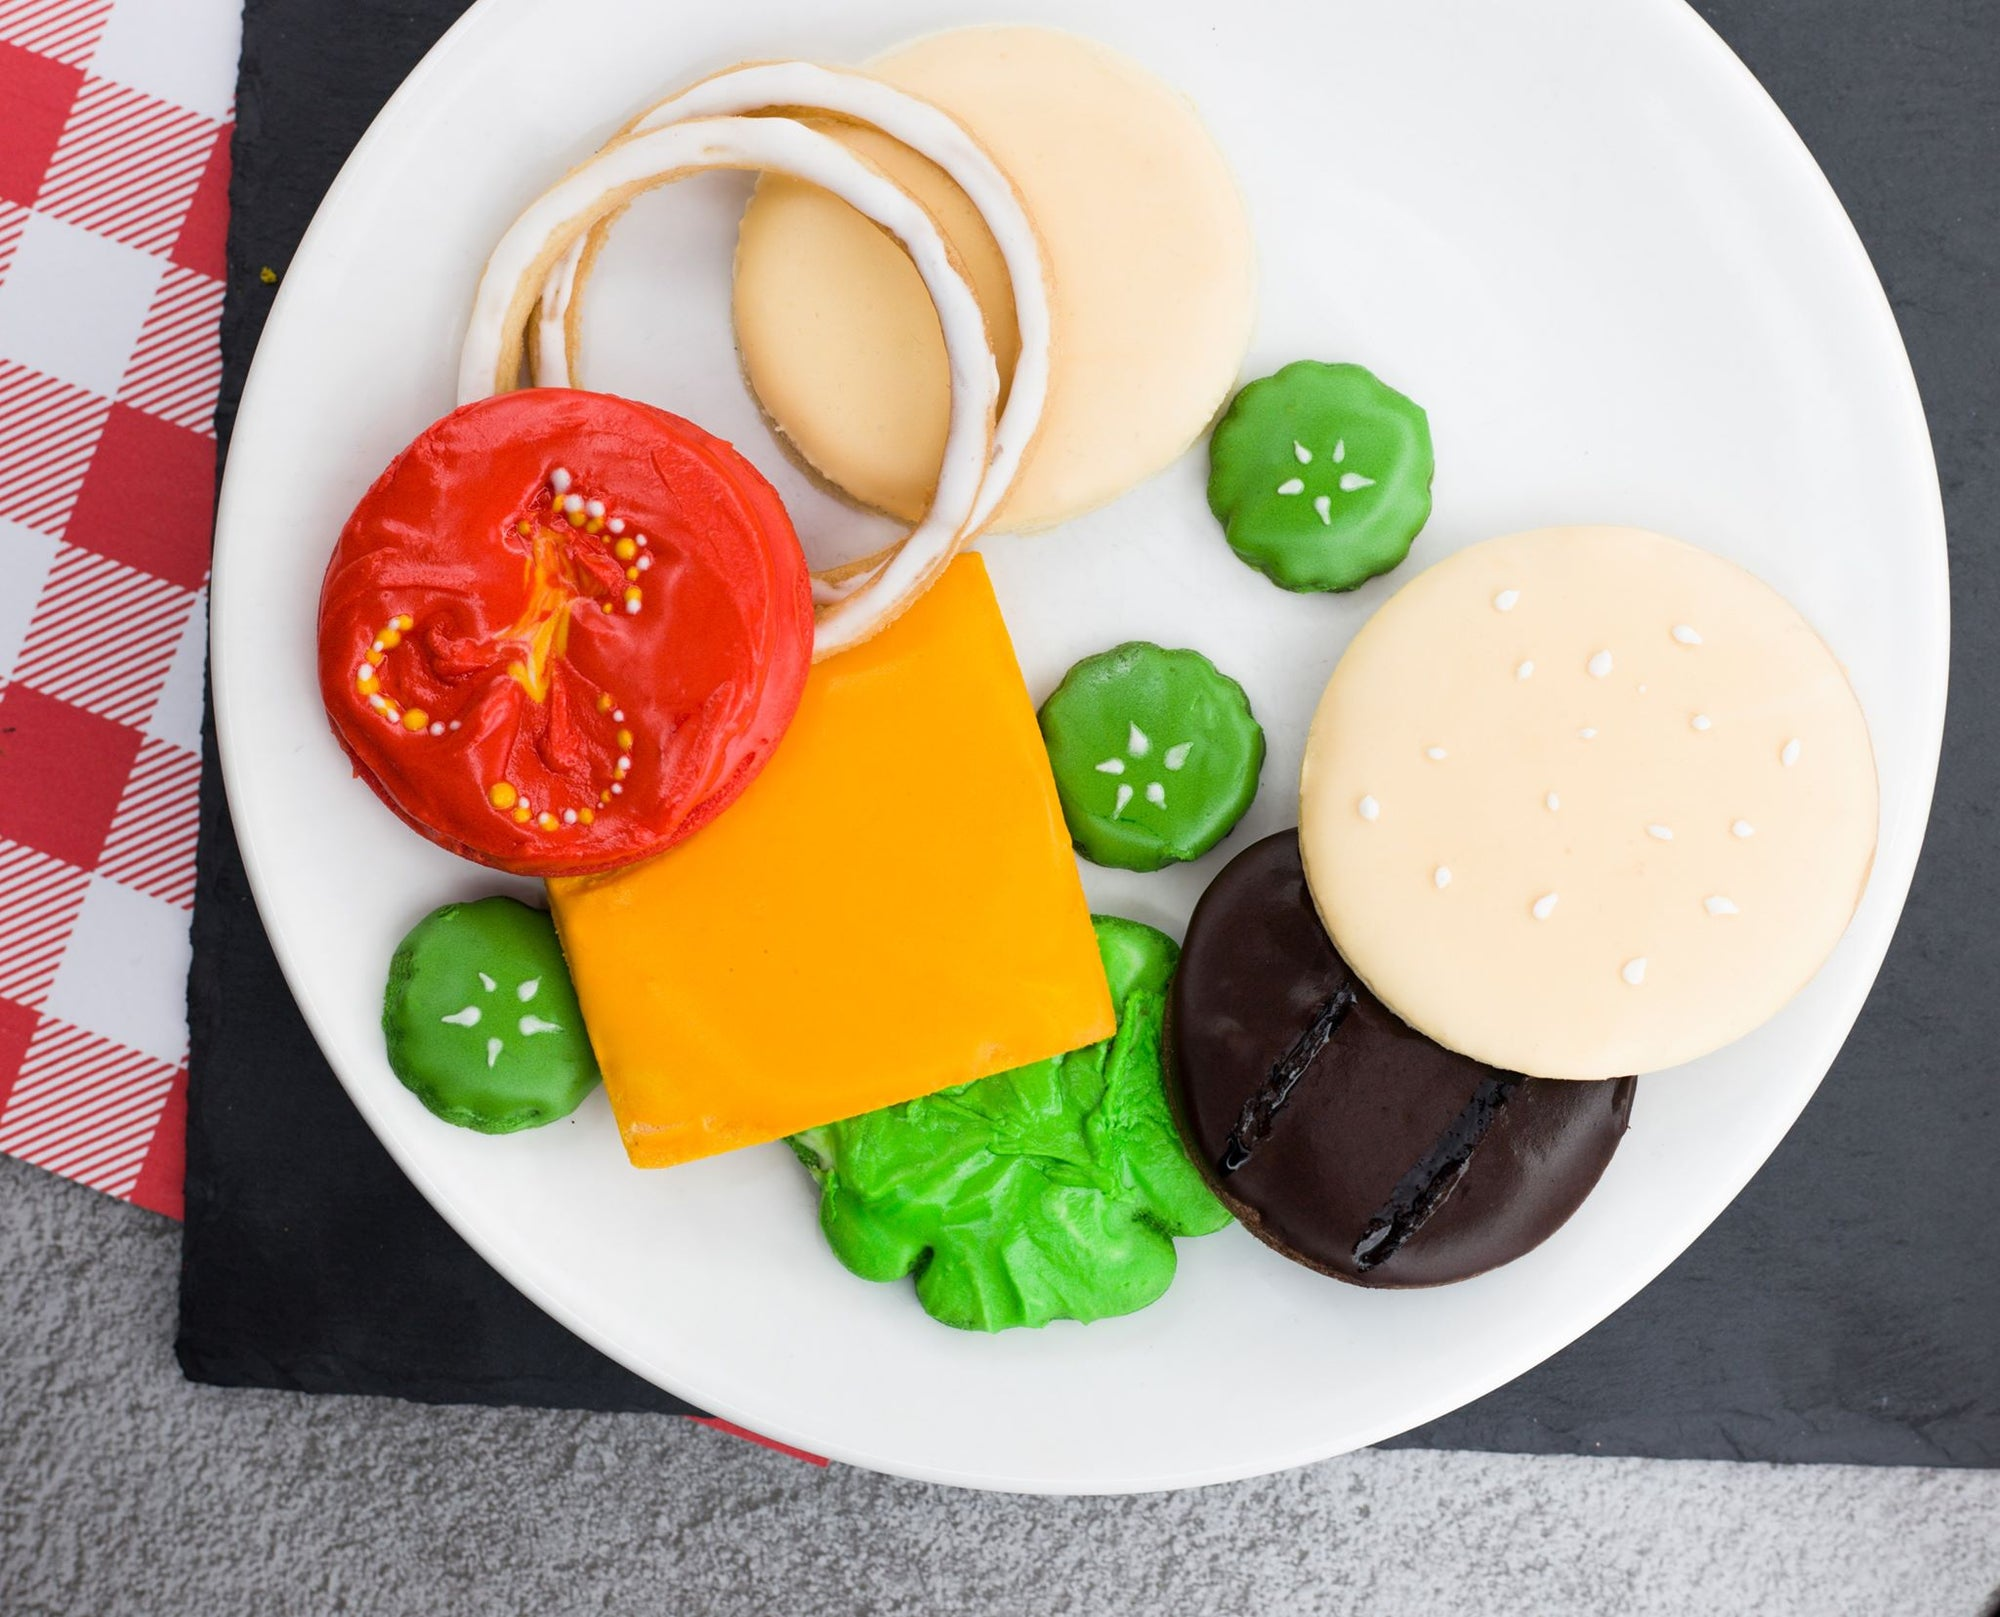 Hamburger Deconstructed Ingredients Set - Dolce3D Cookie Cutters